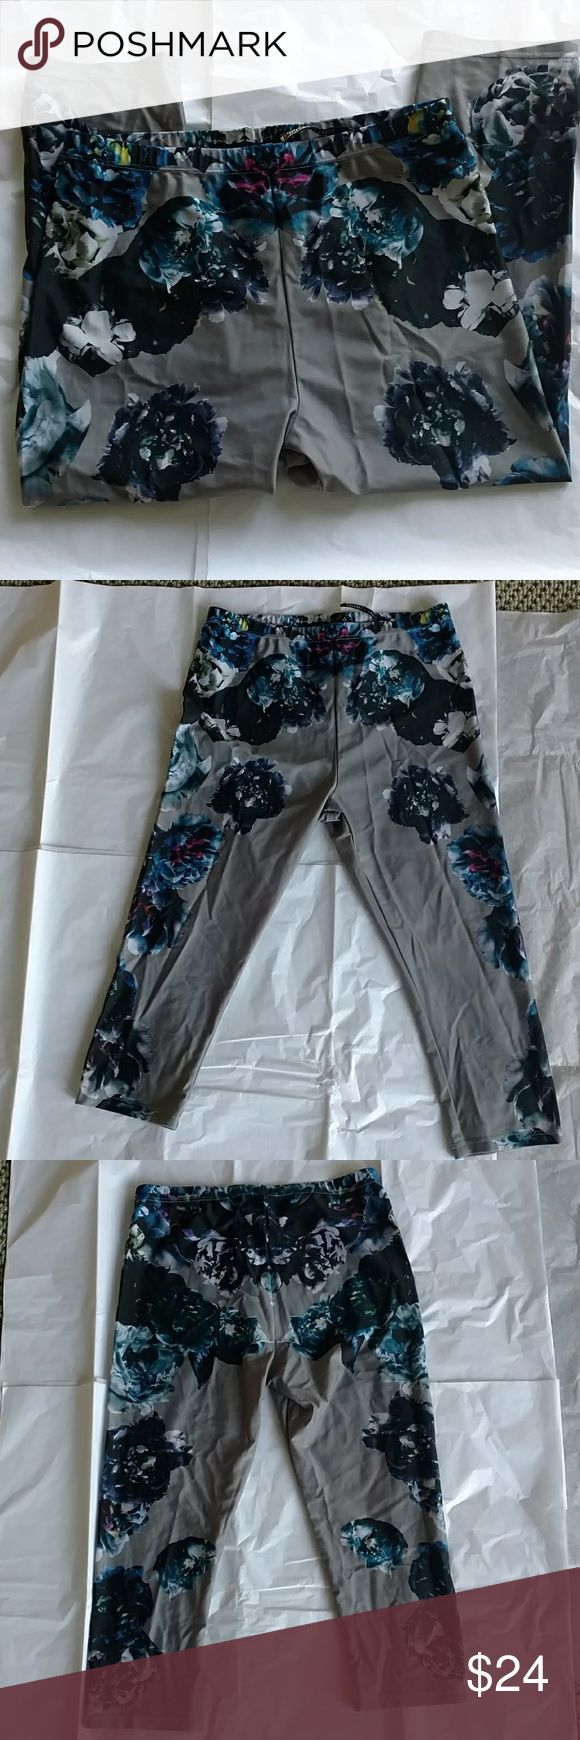 """AllSaints cropped leggings Sweat in style with these printed leggings from All saints. Good condition, worn less than 5 times 9.5"""" rise 16.5"""" inseam 25.5"""" waistband 12"""" leg opening All Saints Pants Leggings"""